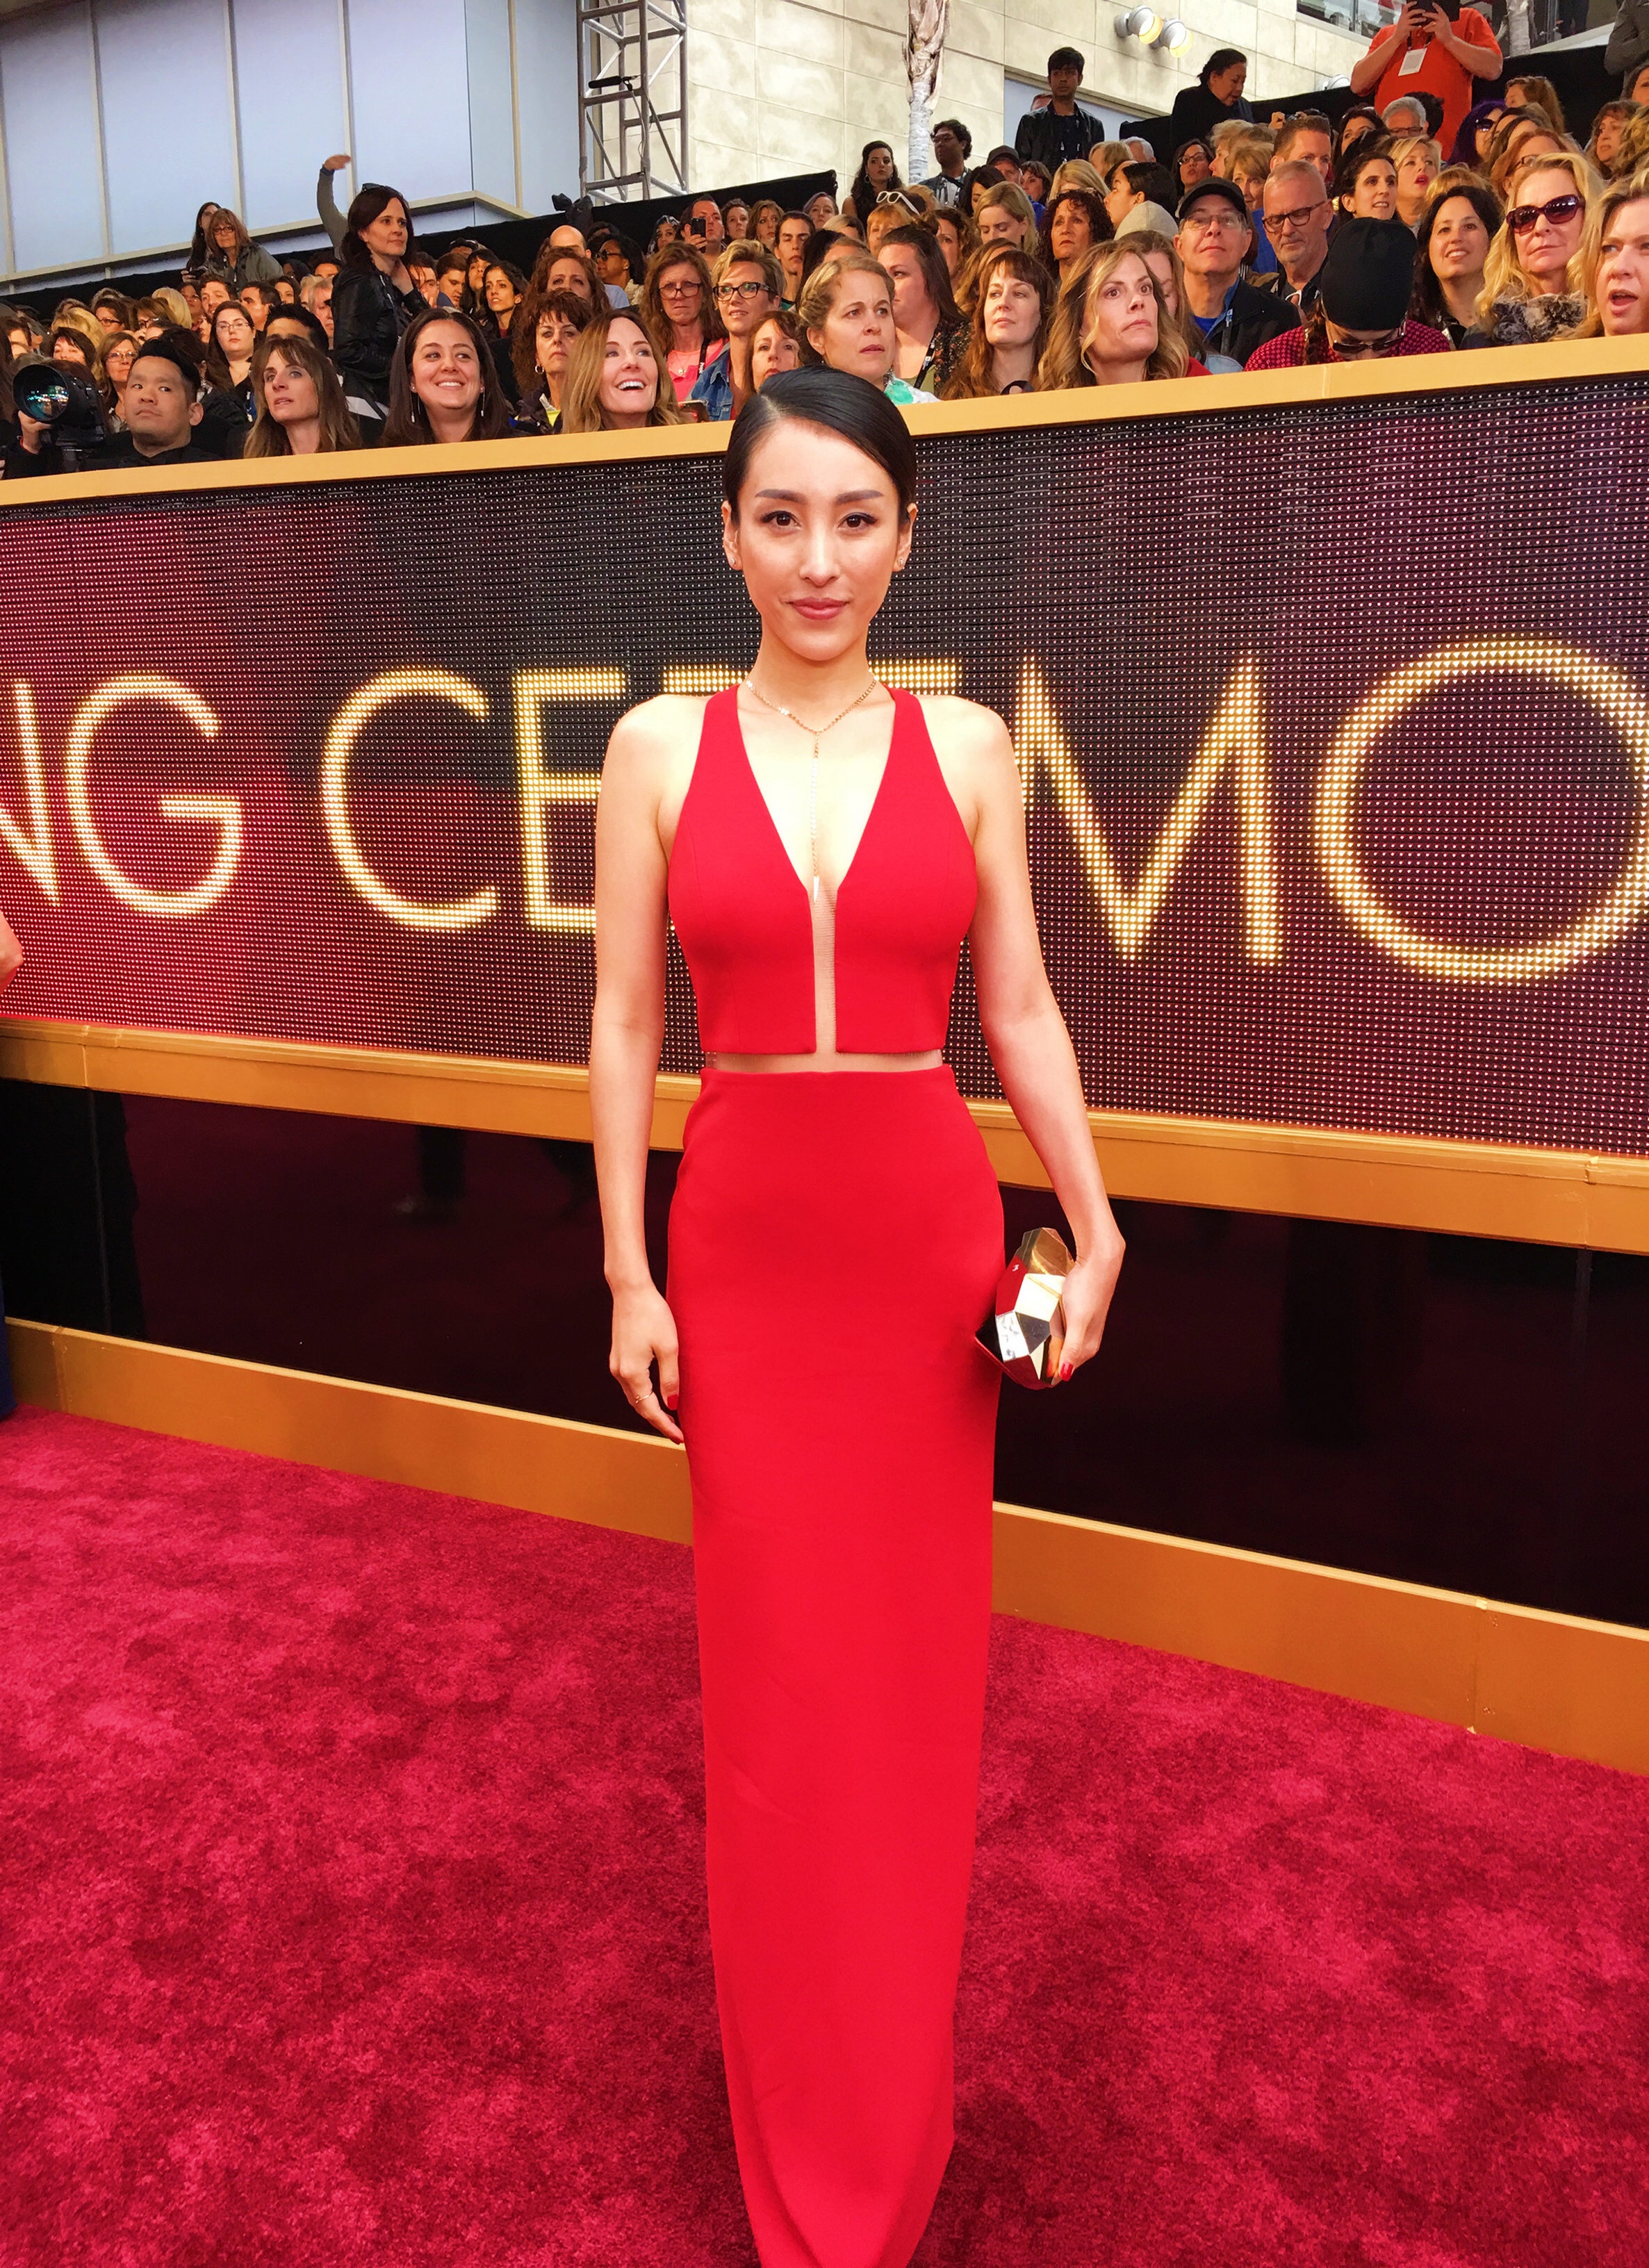 Jane Wu at the Oscars 2017